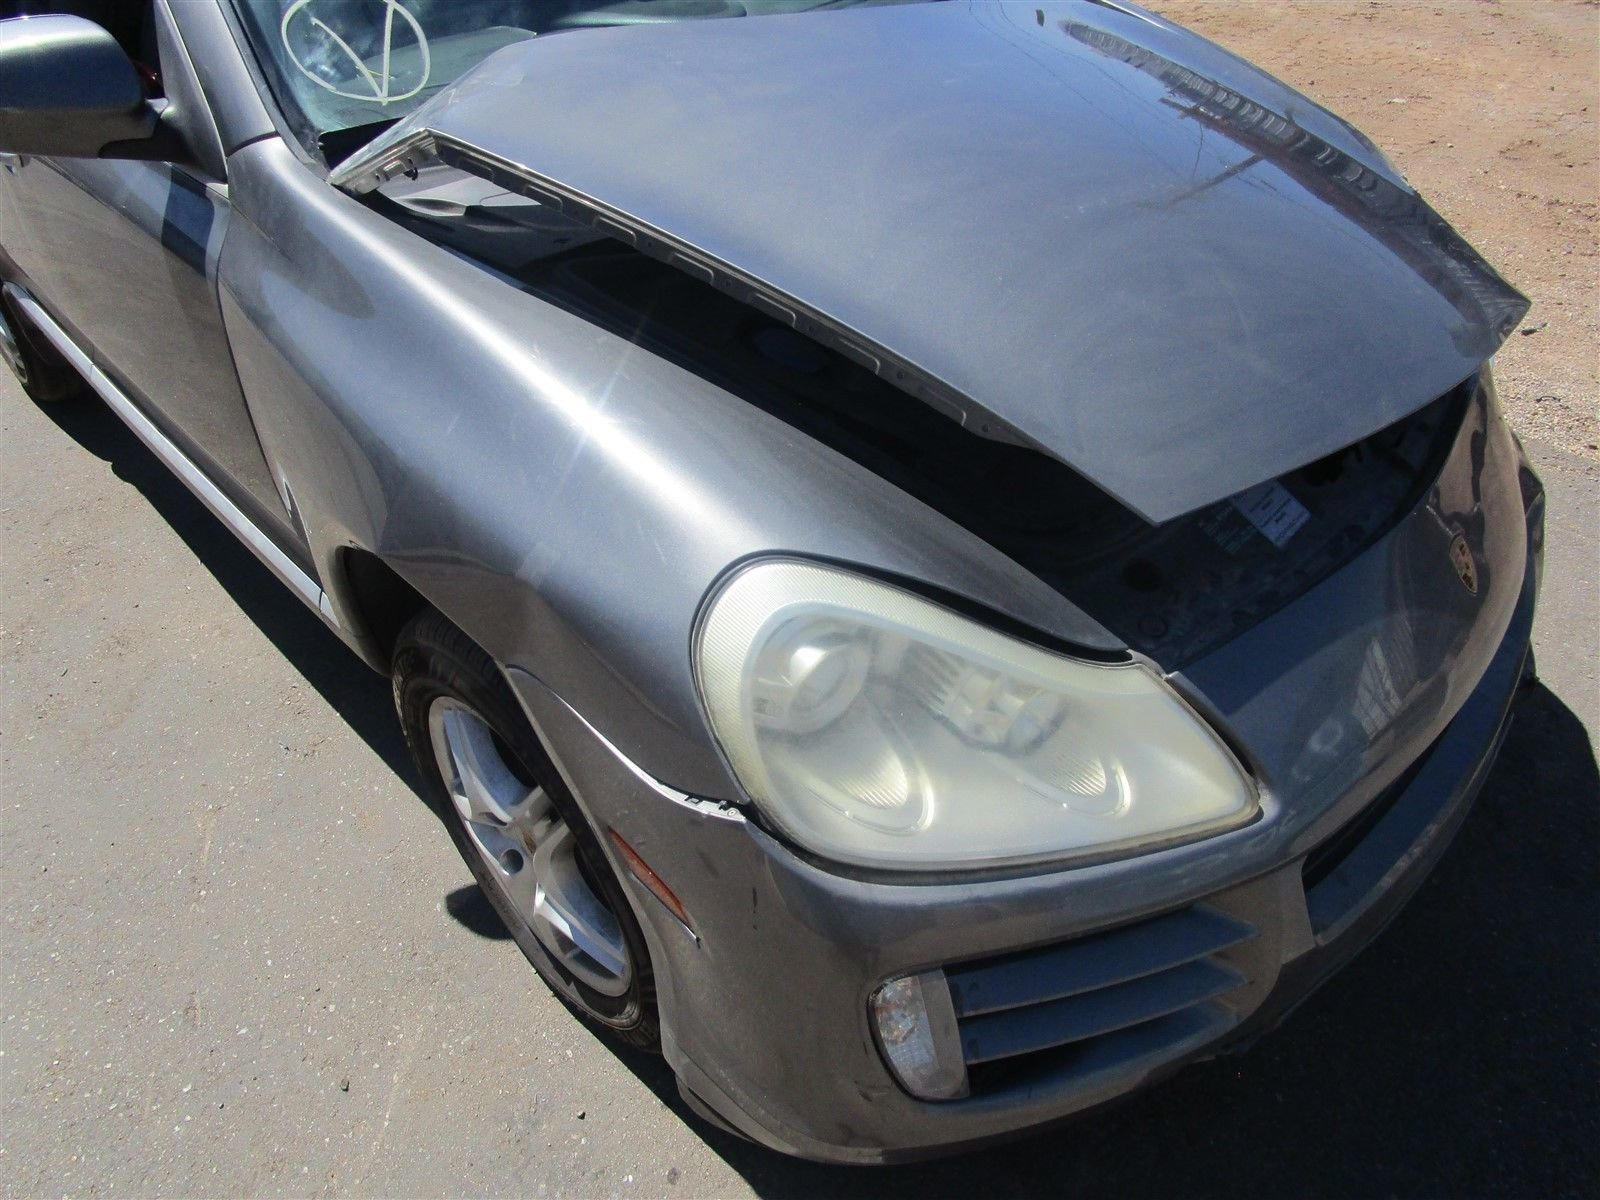 08 Cayenne AWD Porsche 957 Parting Out parts car 122,831